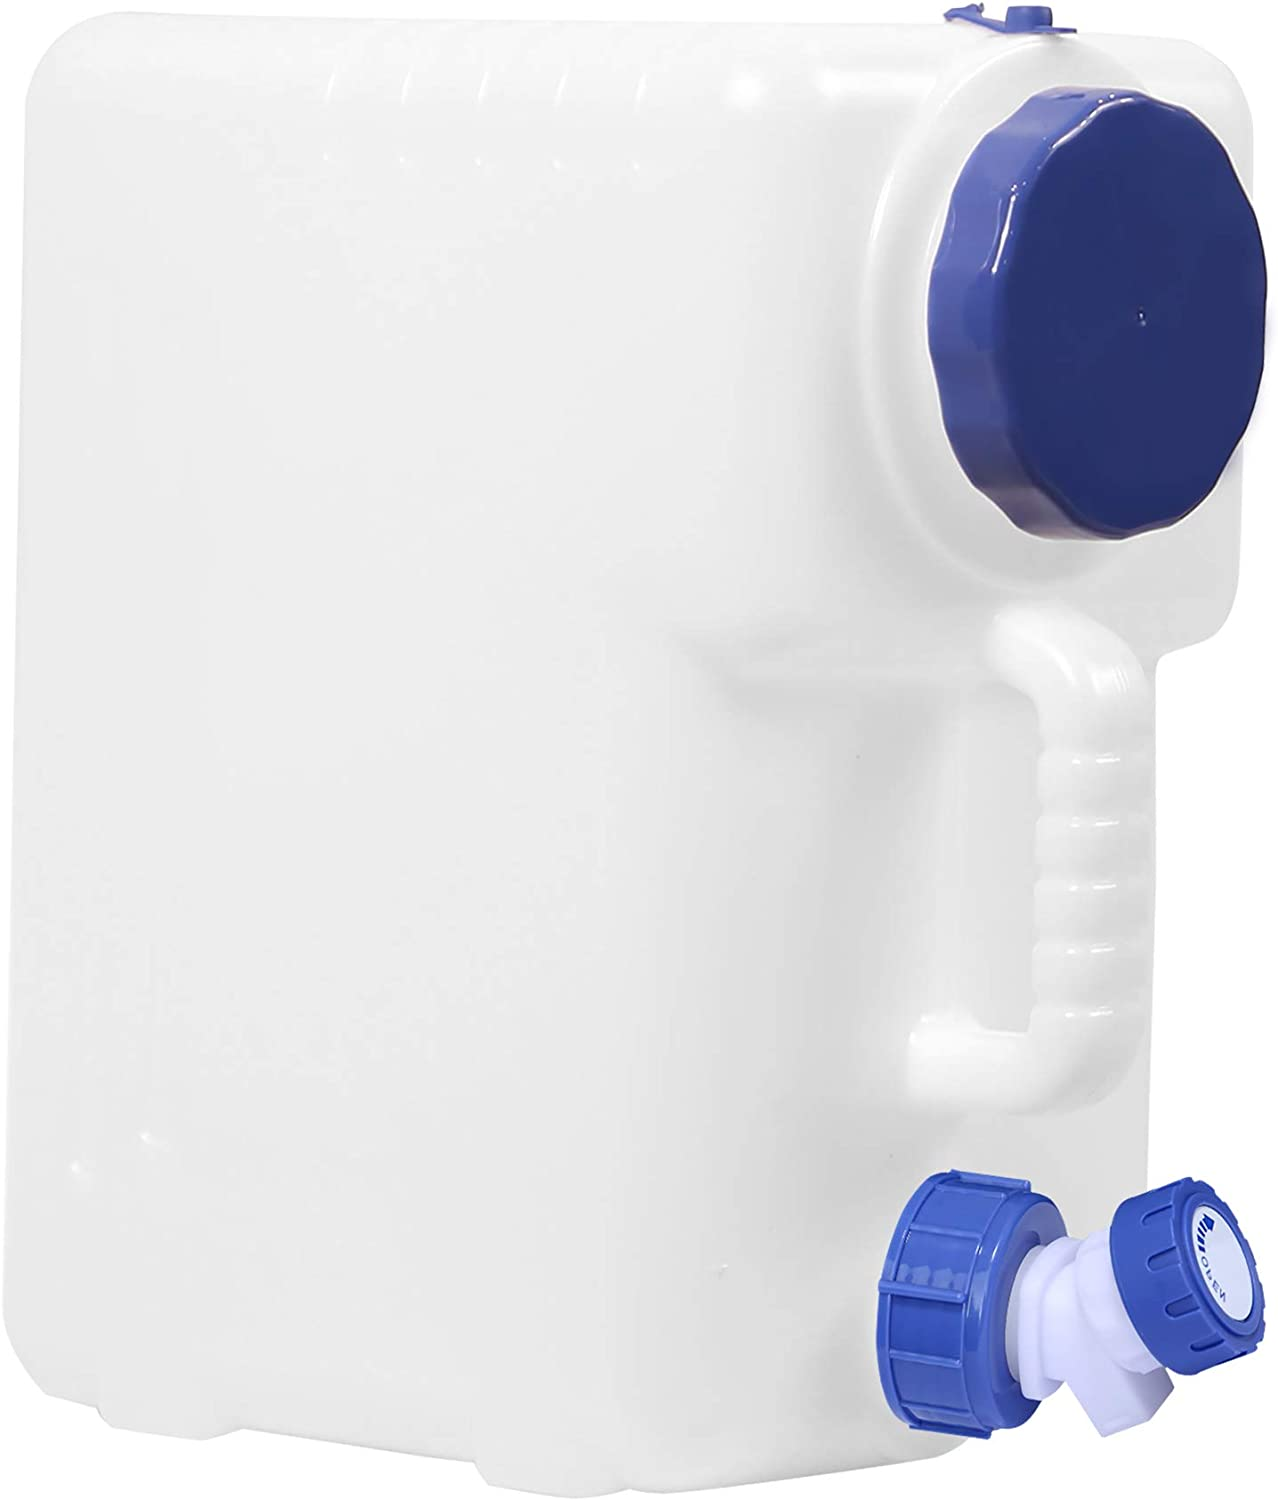 CAMPMAX Water Container with Spigot, 4/5 Gallon Portable Water Storage for Camping Outdoor Hiking Backpacking